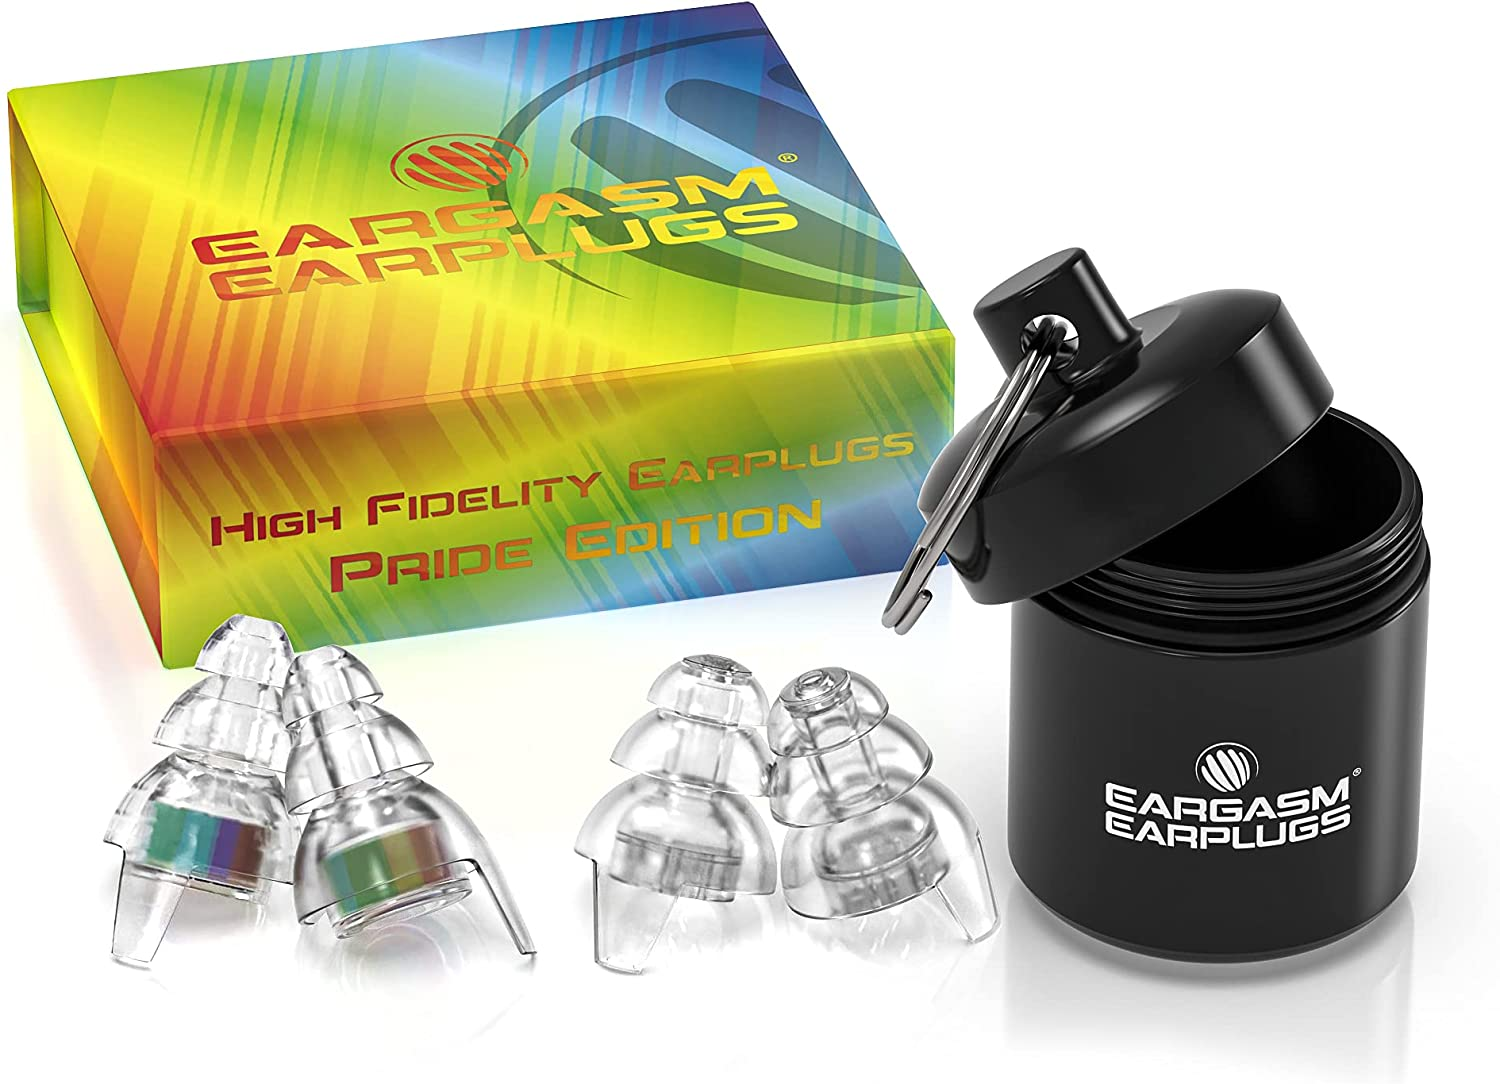 Eargasm High Fidelity Earplugs: Pride Edition C - Chicago Mall Your Show Low price True